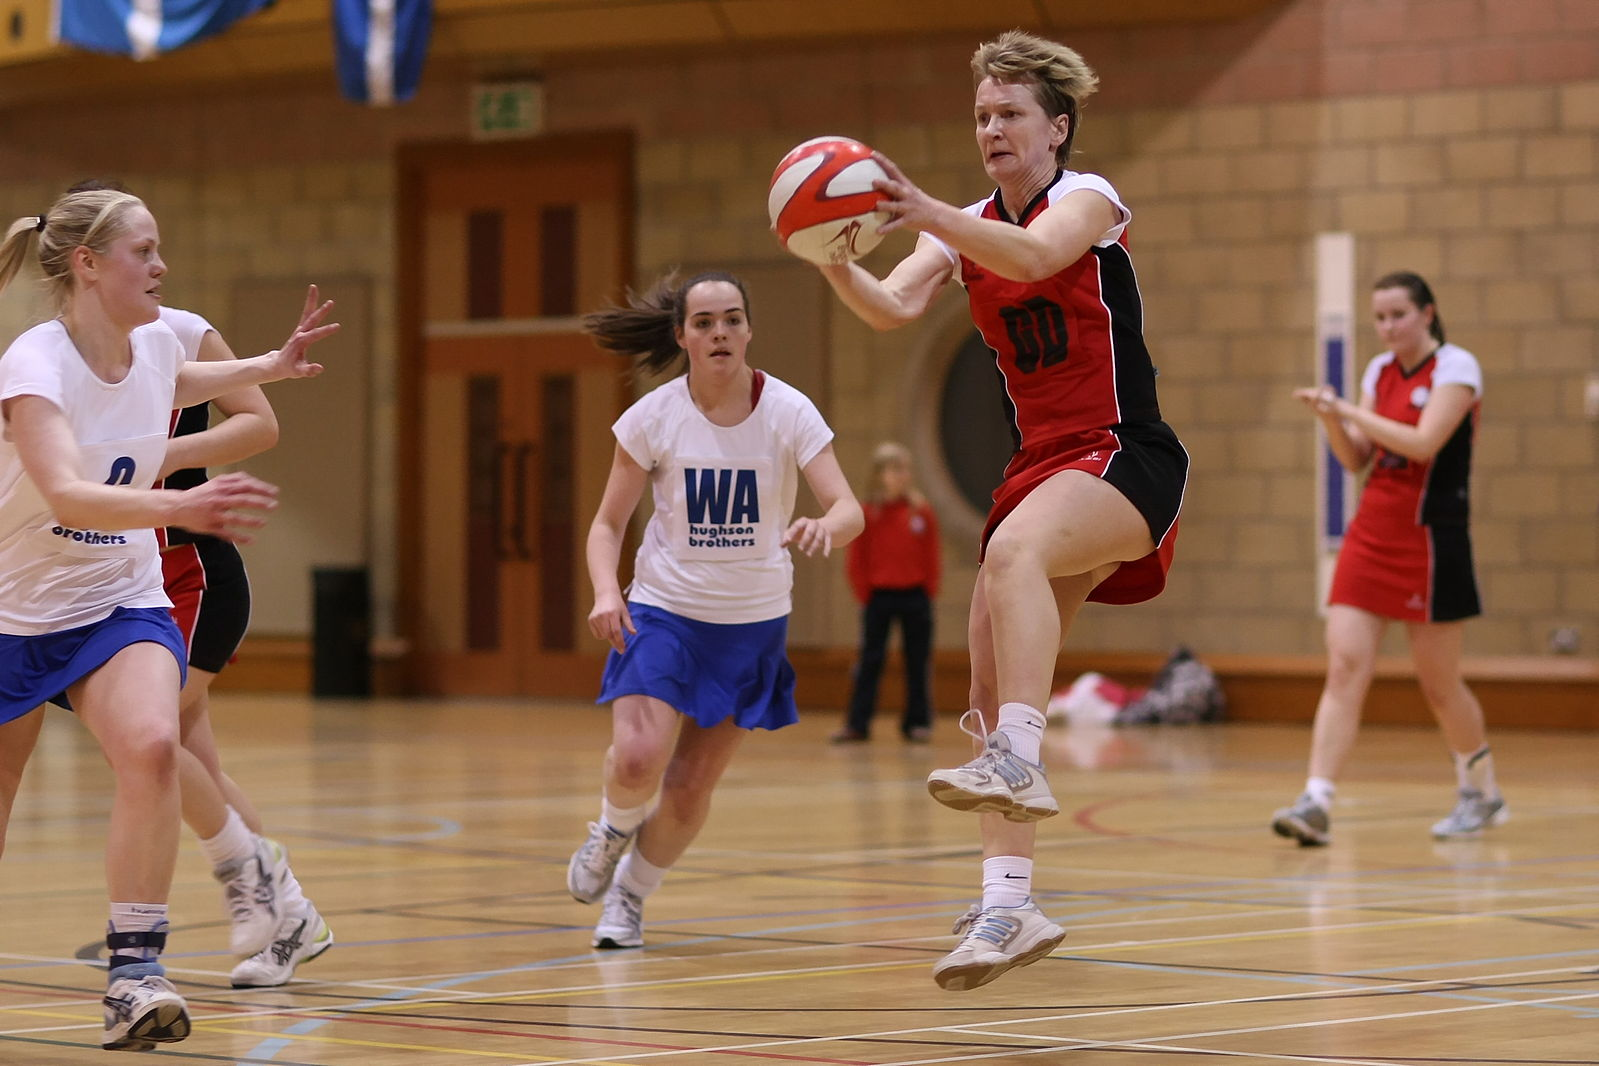 What is Fast5 netball?